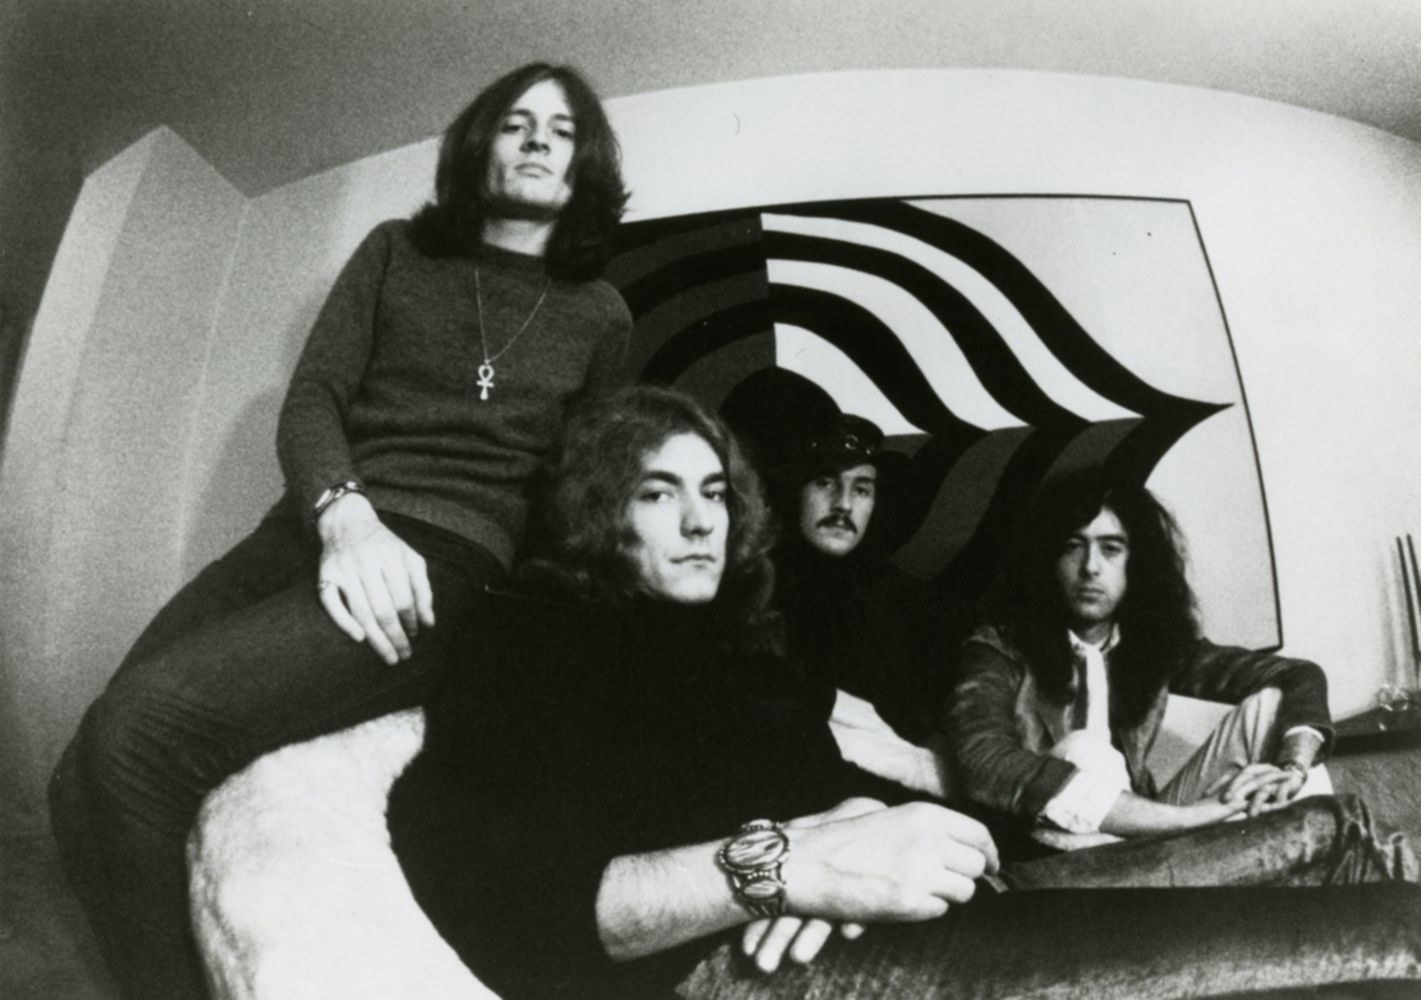 Led_Zeppelin_Led_Zeppelin_1969_bw4 press